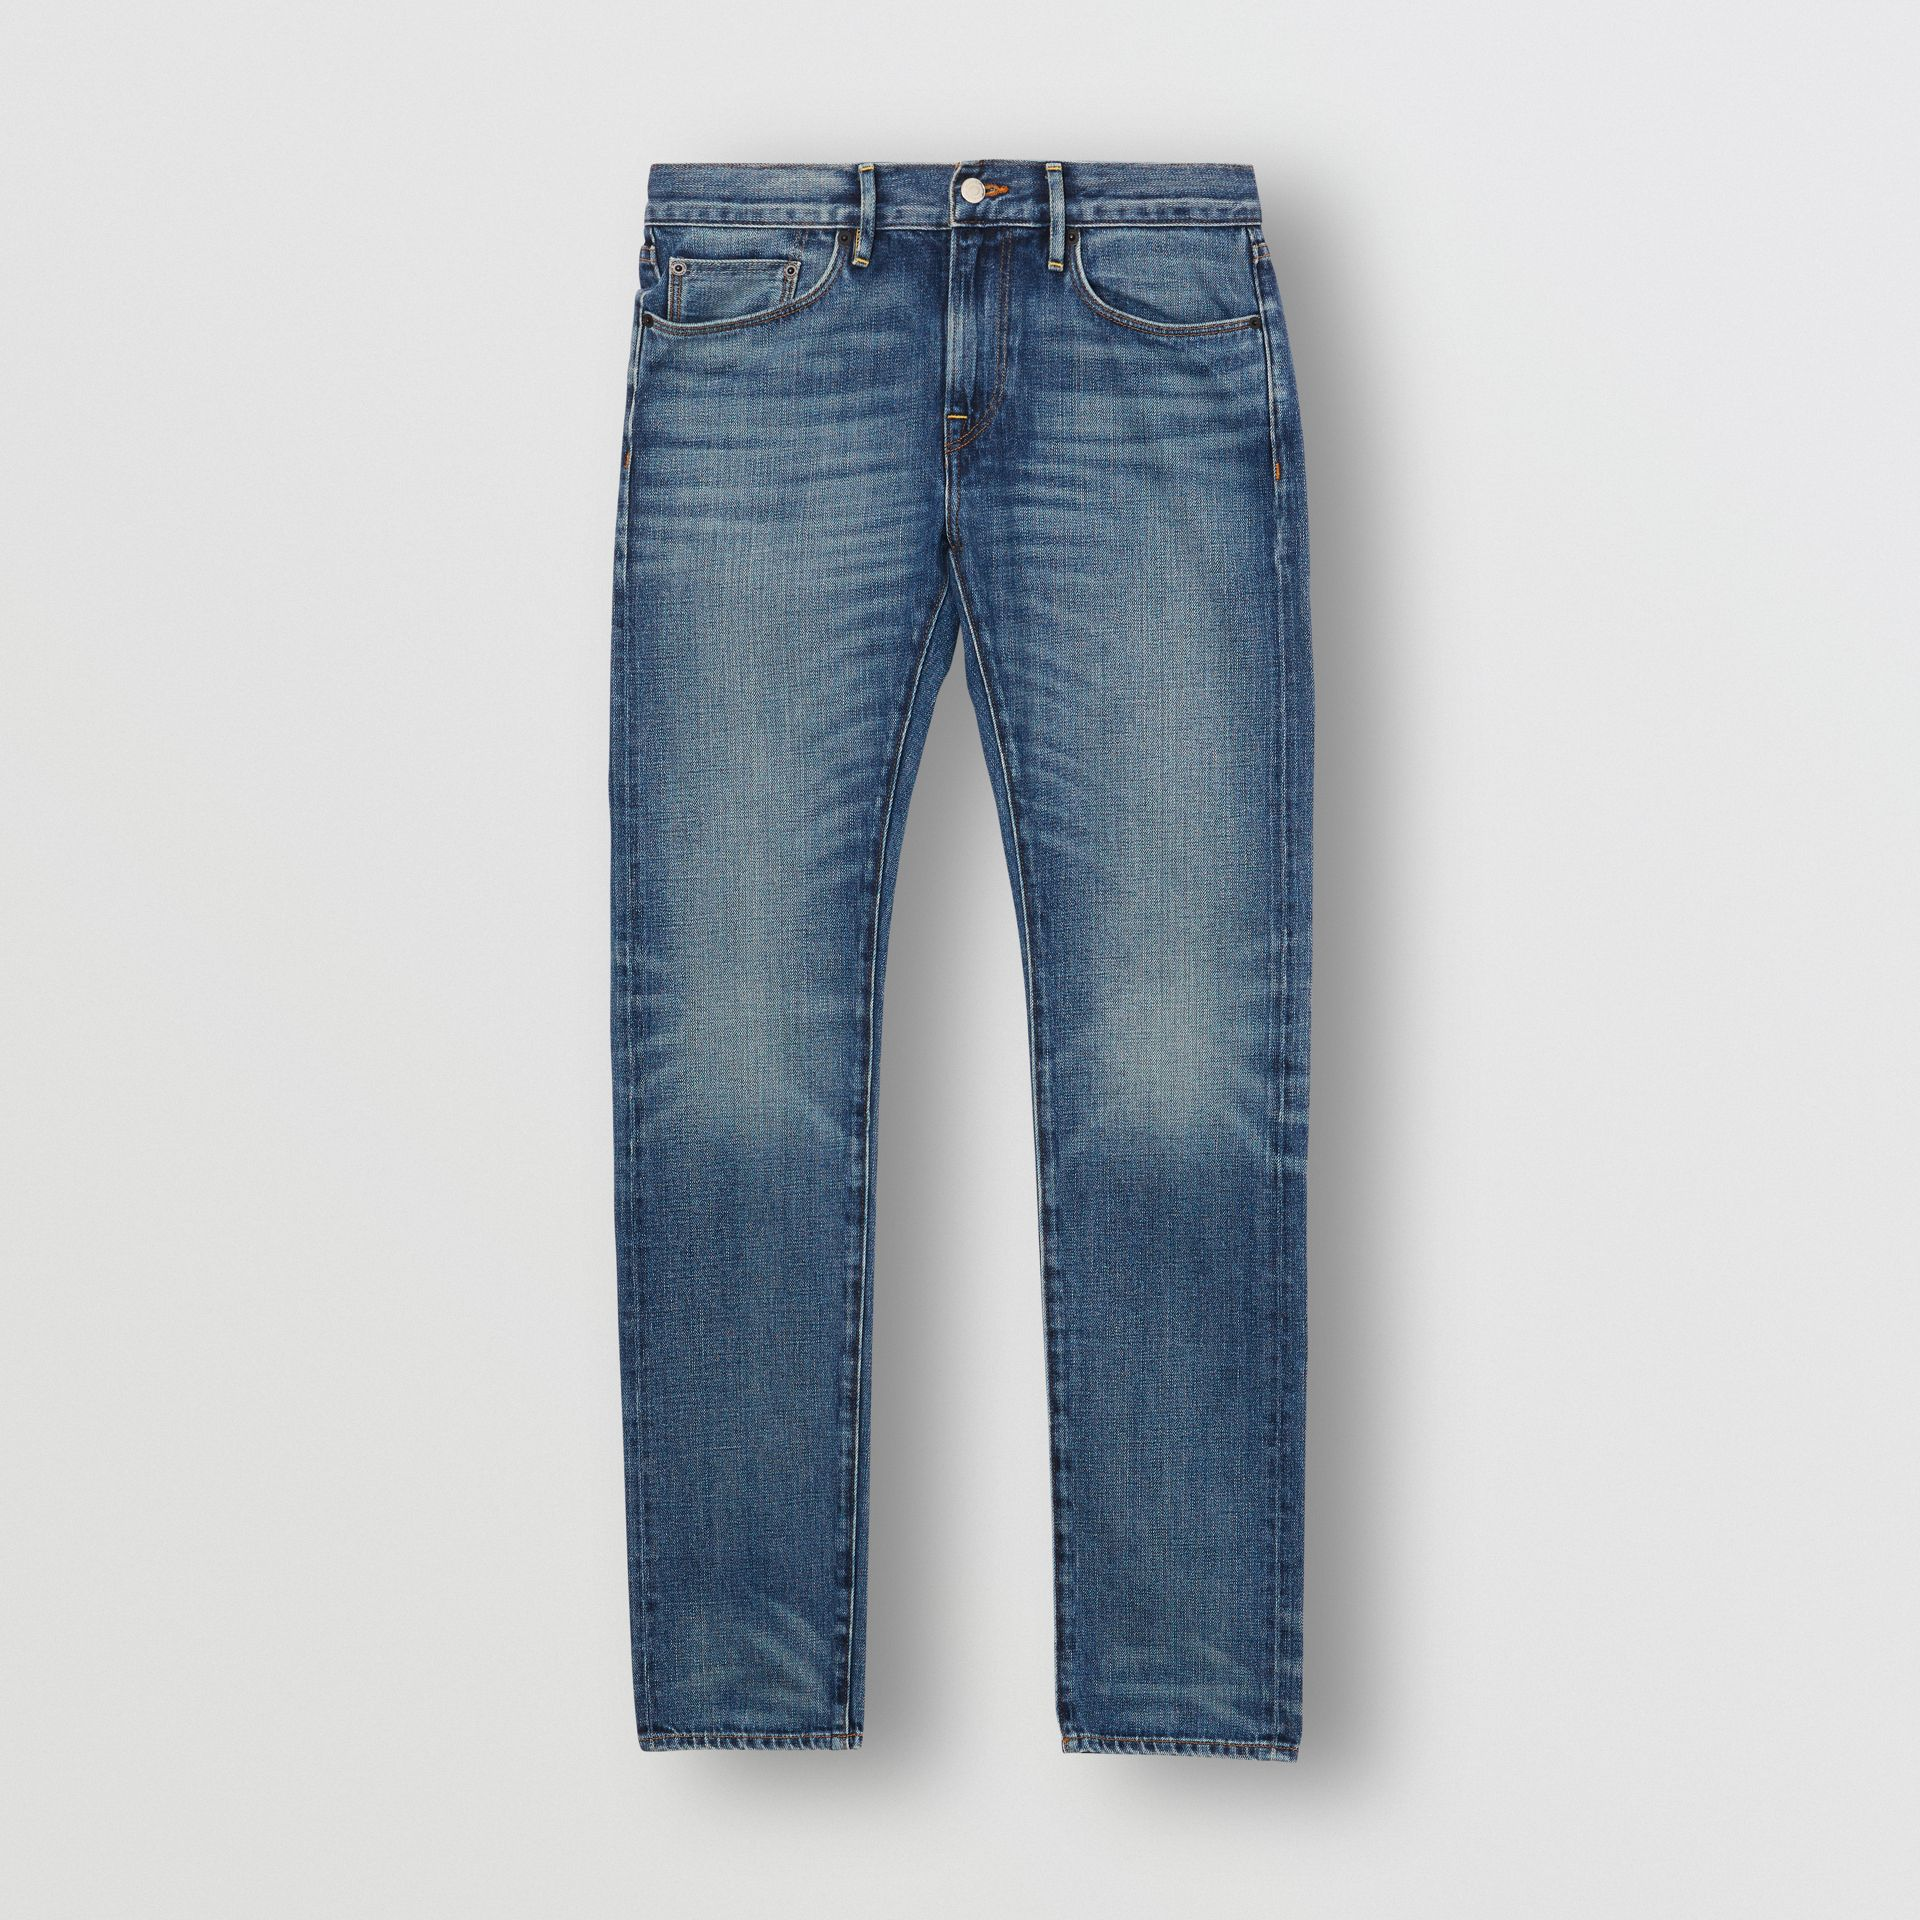 Jean de coupe slim en denim selvedge japonais délavé (Indigo Clair) - Homme | Burberry - photo de la galerie 3